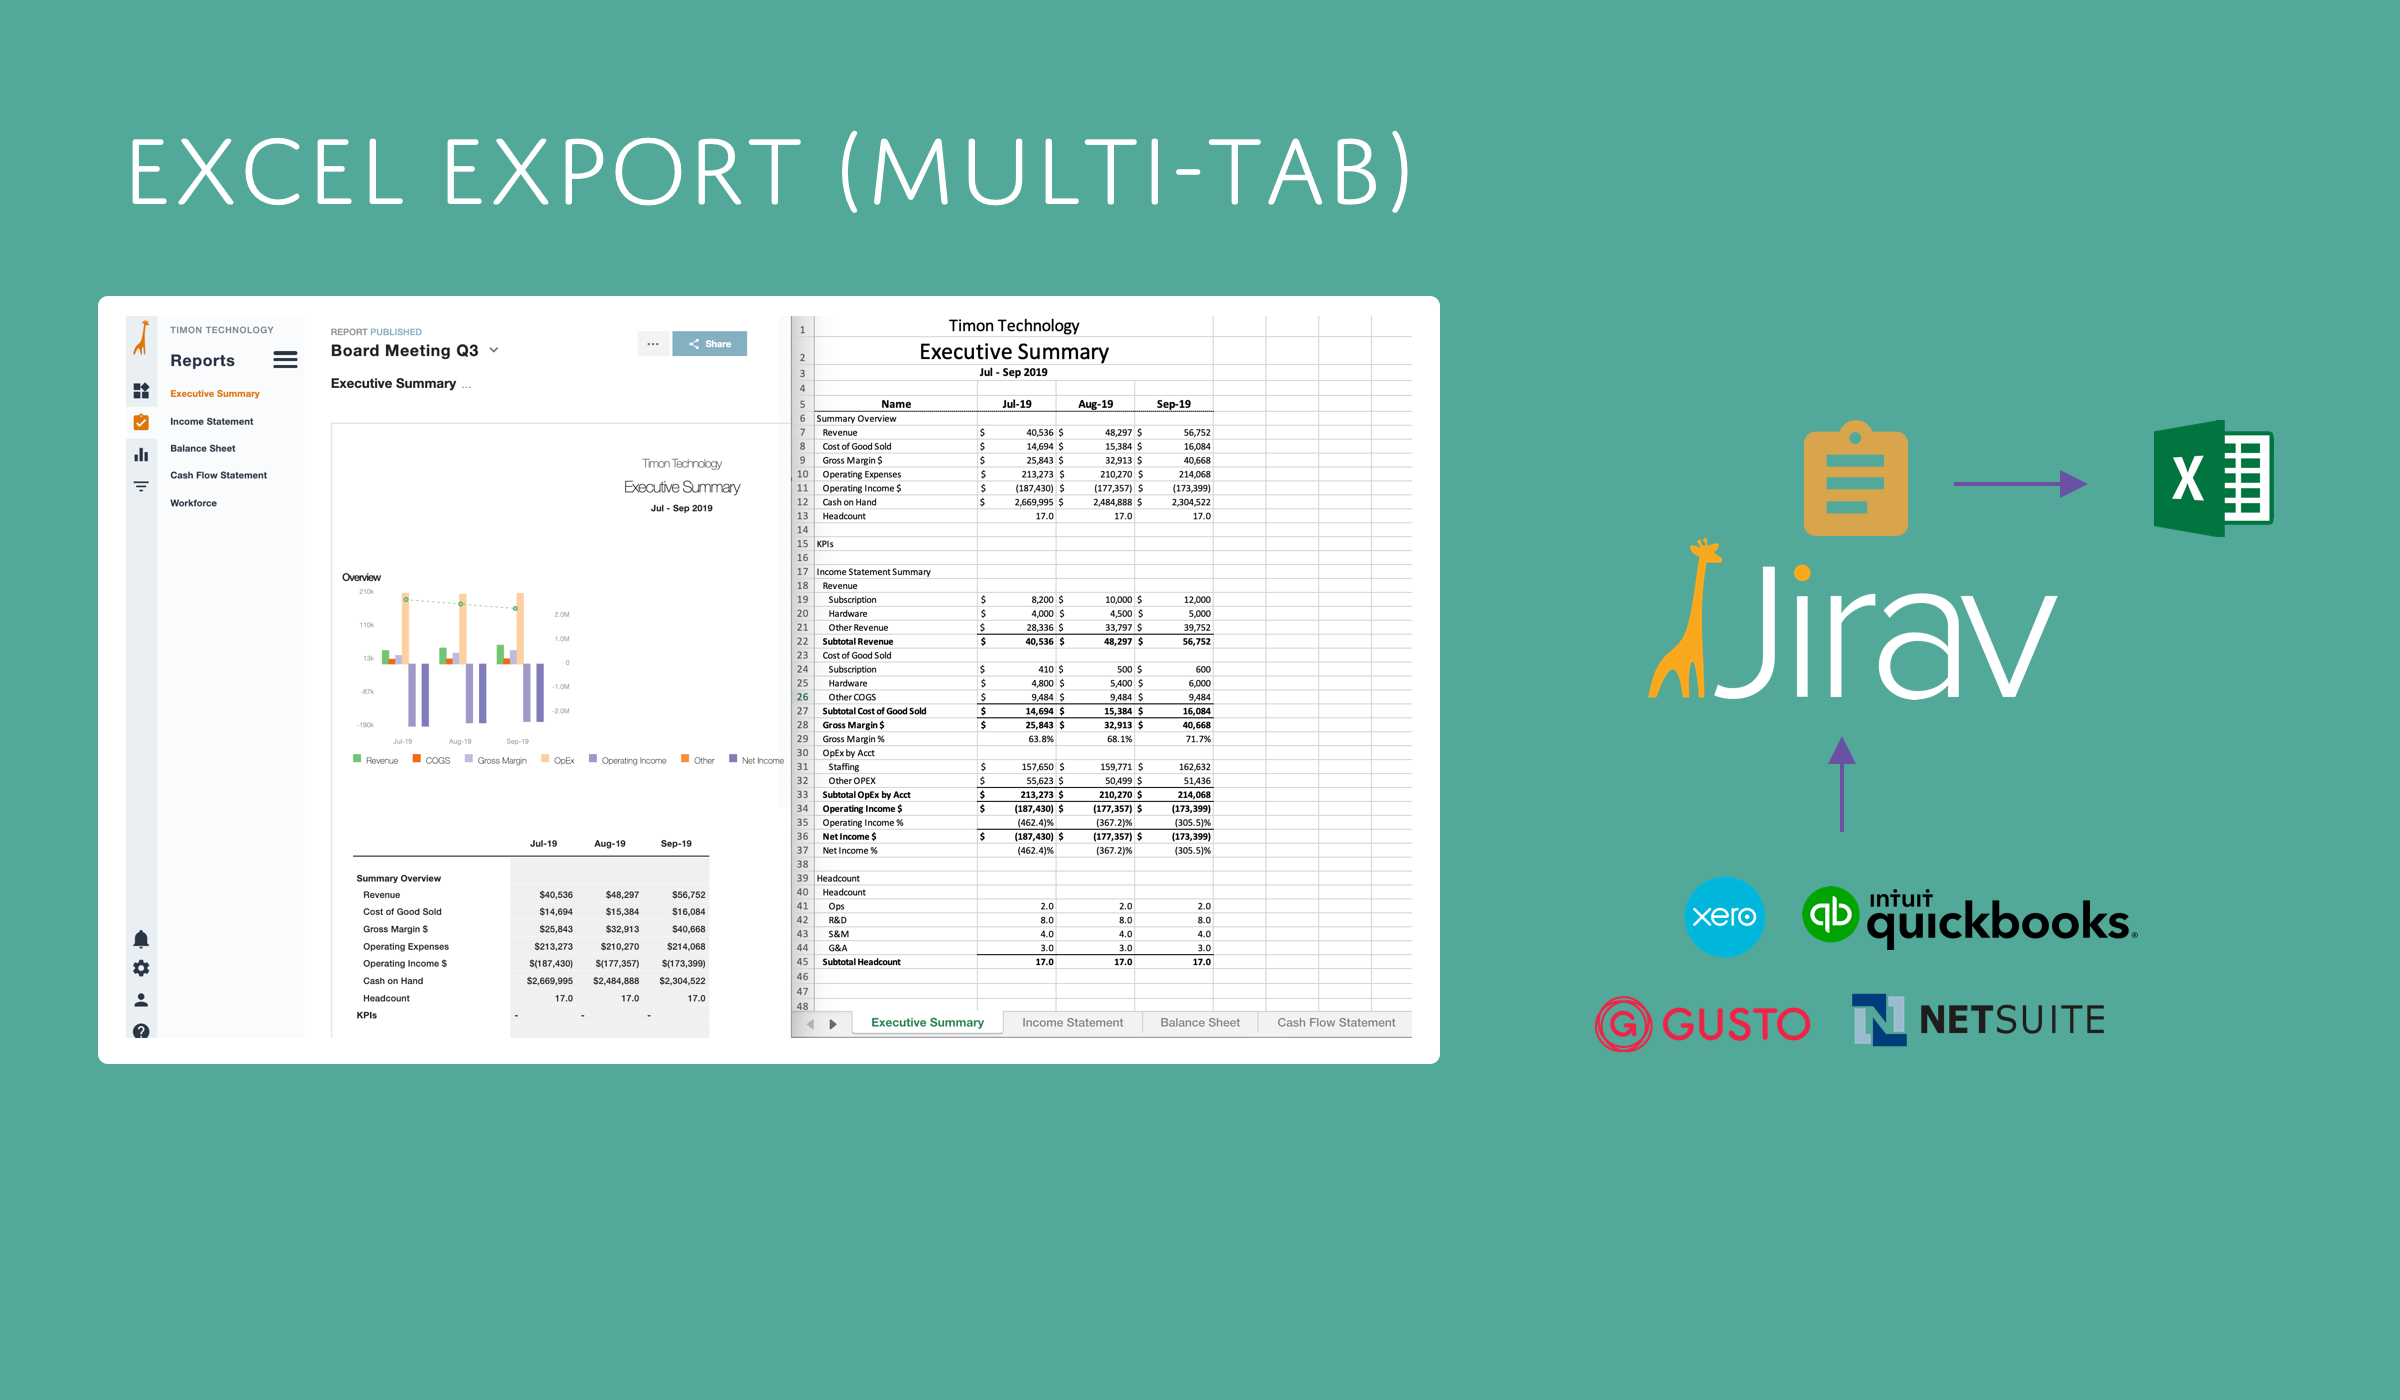 Excel Export Multi-tab